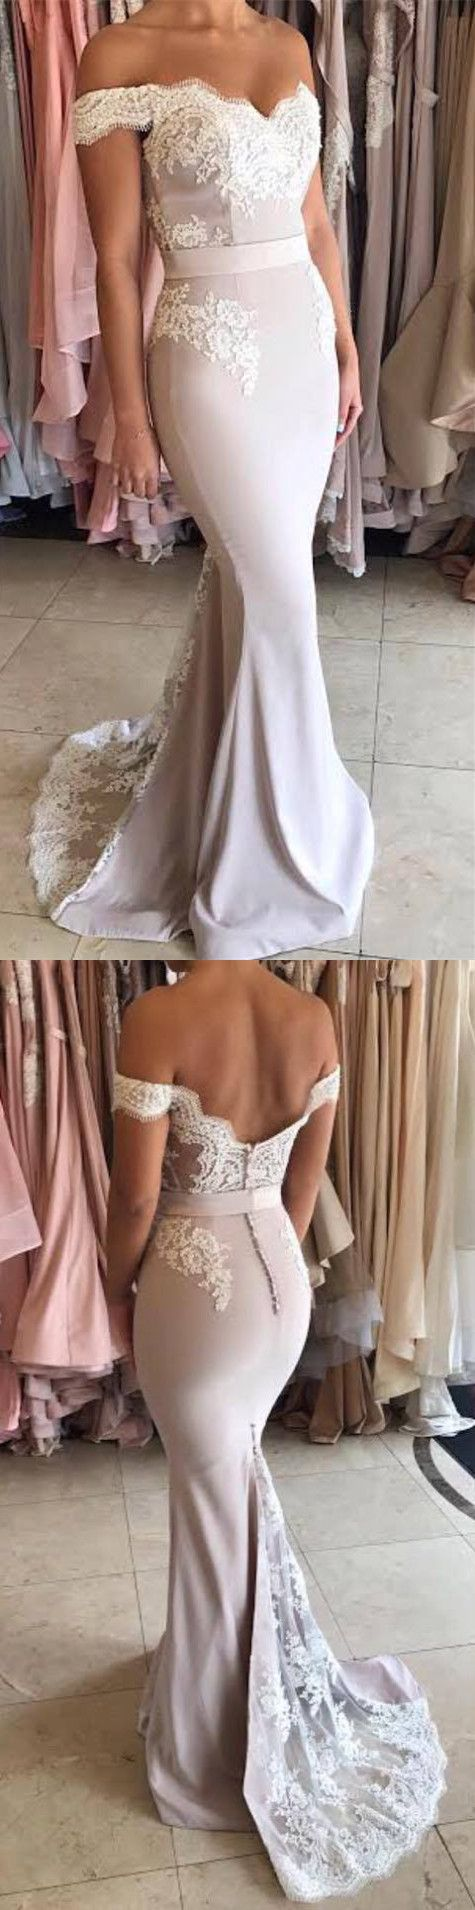 Only $139--Off-the-Shoulder Lace Mermaid Long Prom Evening Dress On Sale. Free Shipping. Extra Coupons. Shop @27dress Today